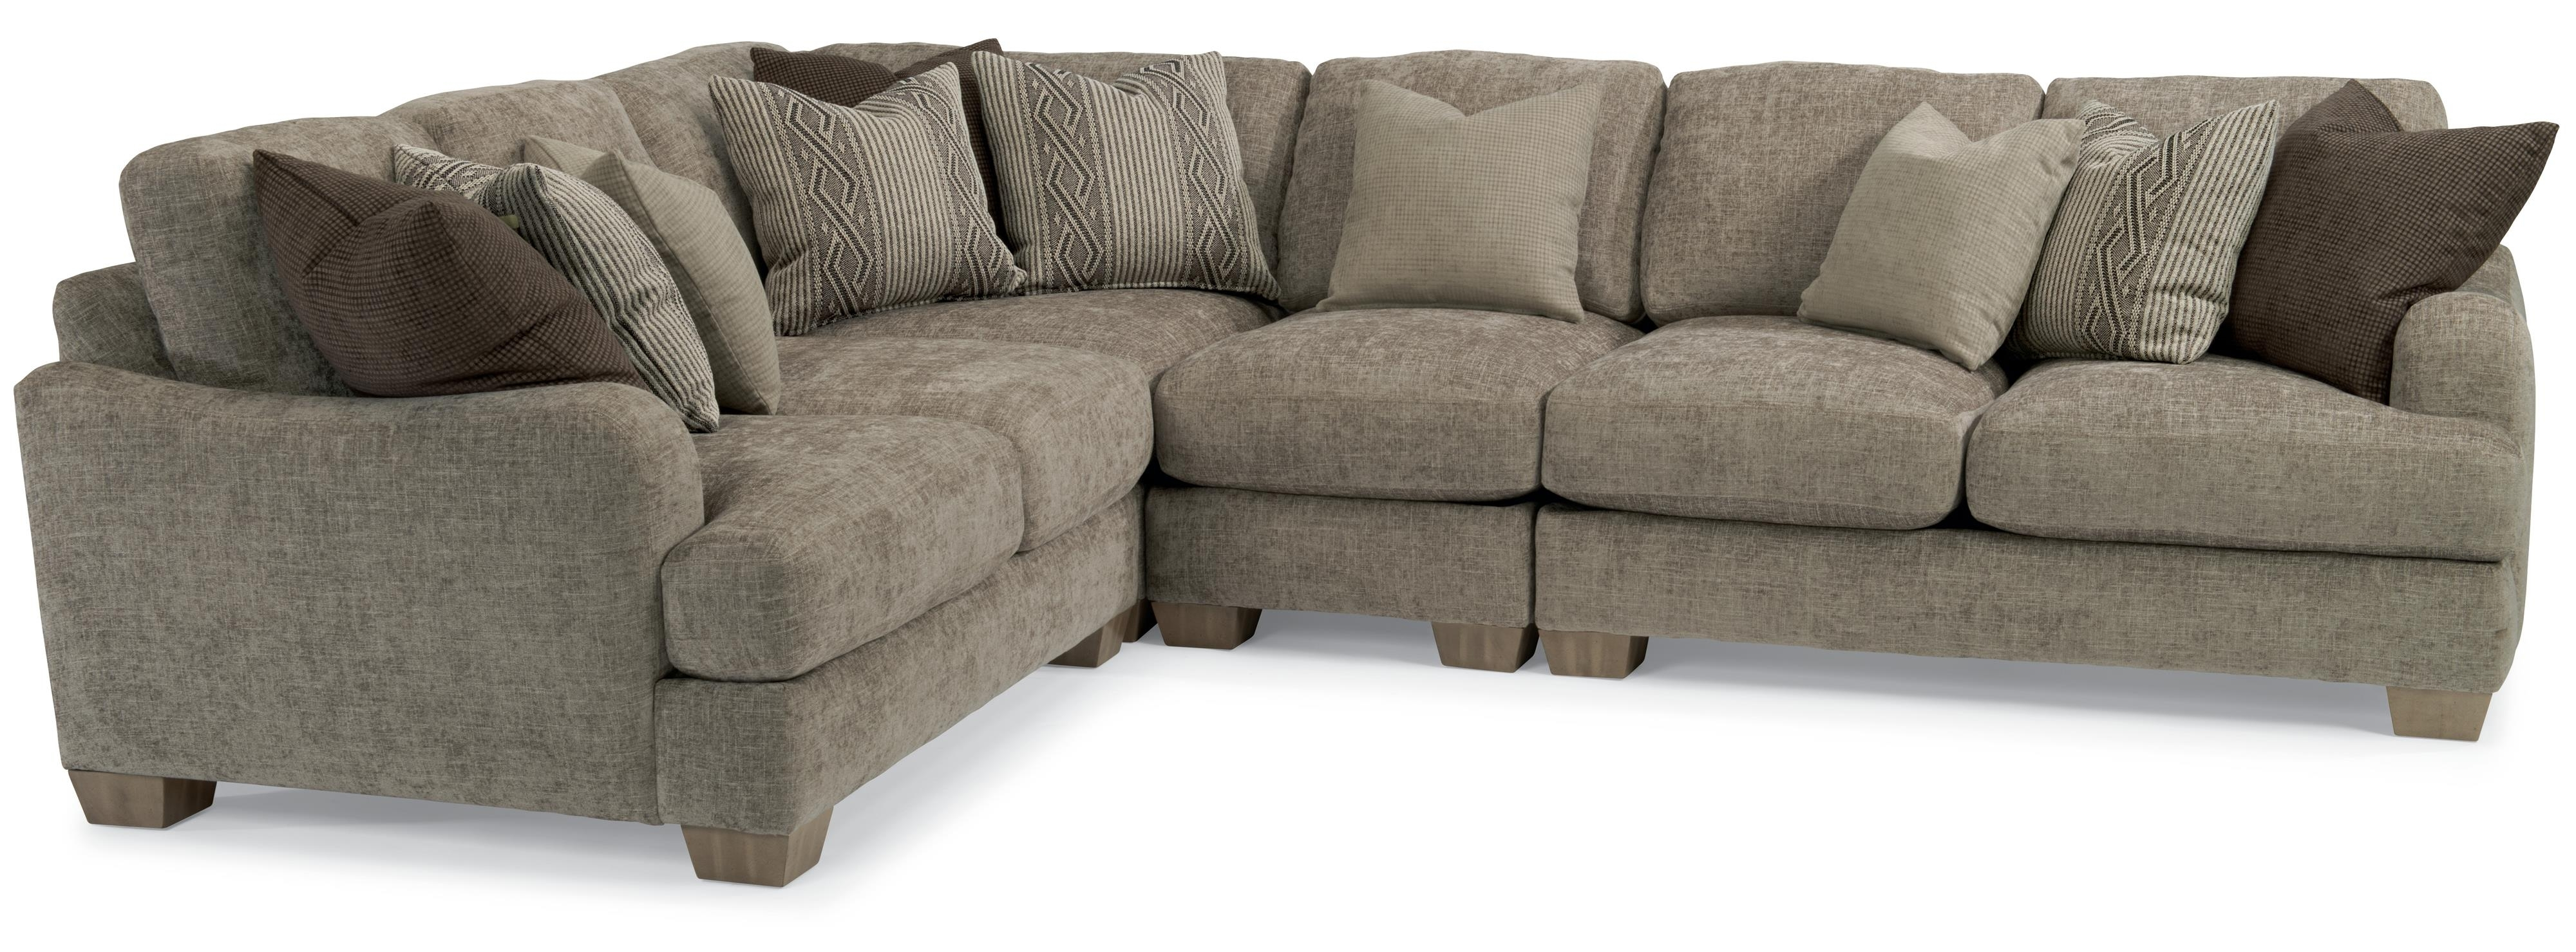 Vanessa Sectional Sofa With Loose Pillow Backflexsteel | Living Throughout Nova Scotia Sectional Sofas (Image 10 of 10)